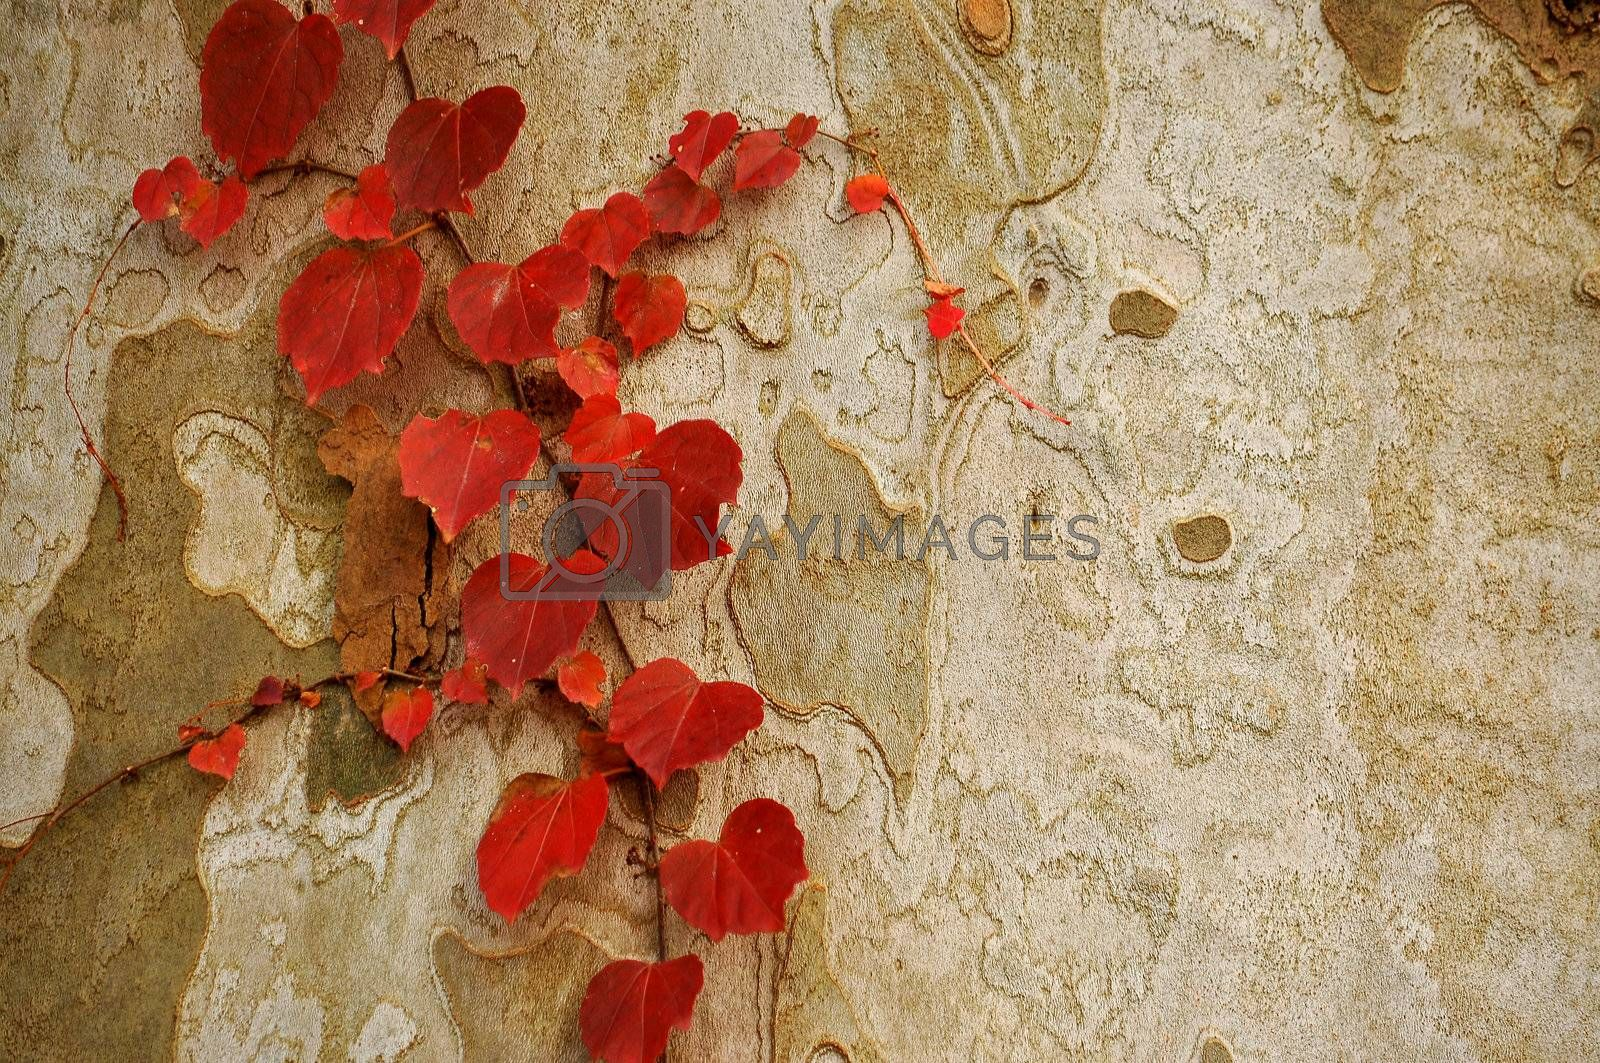 An abstract photo of red leaves growing on the brownish grayish bark of a tree.